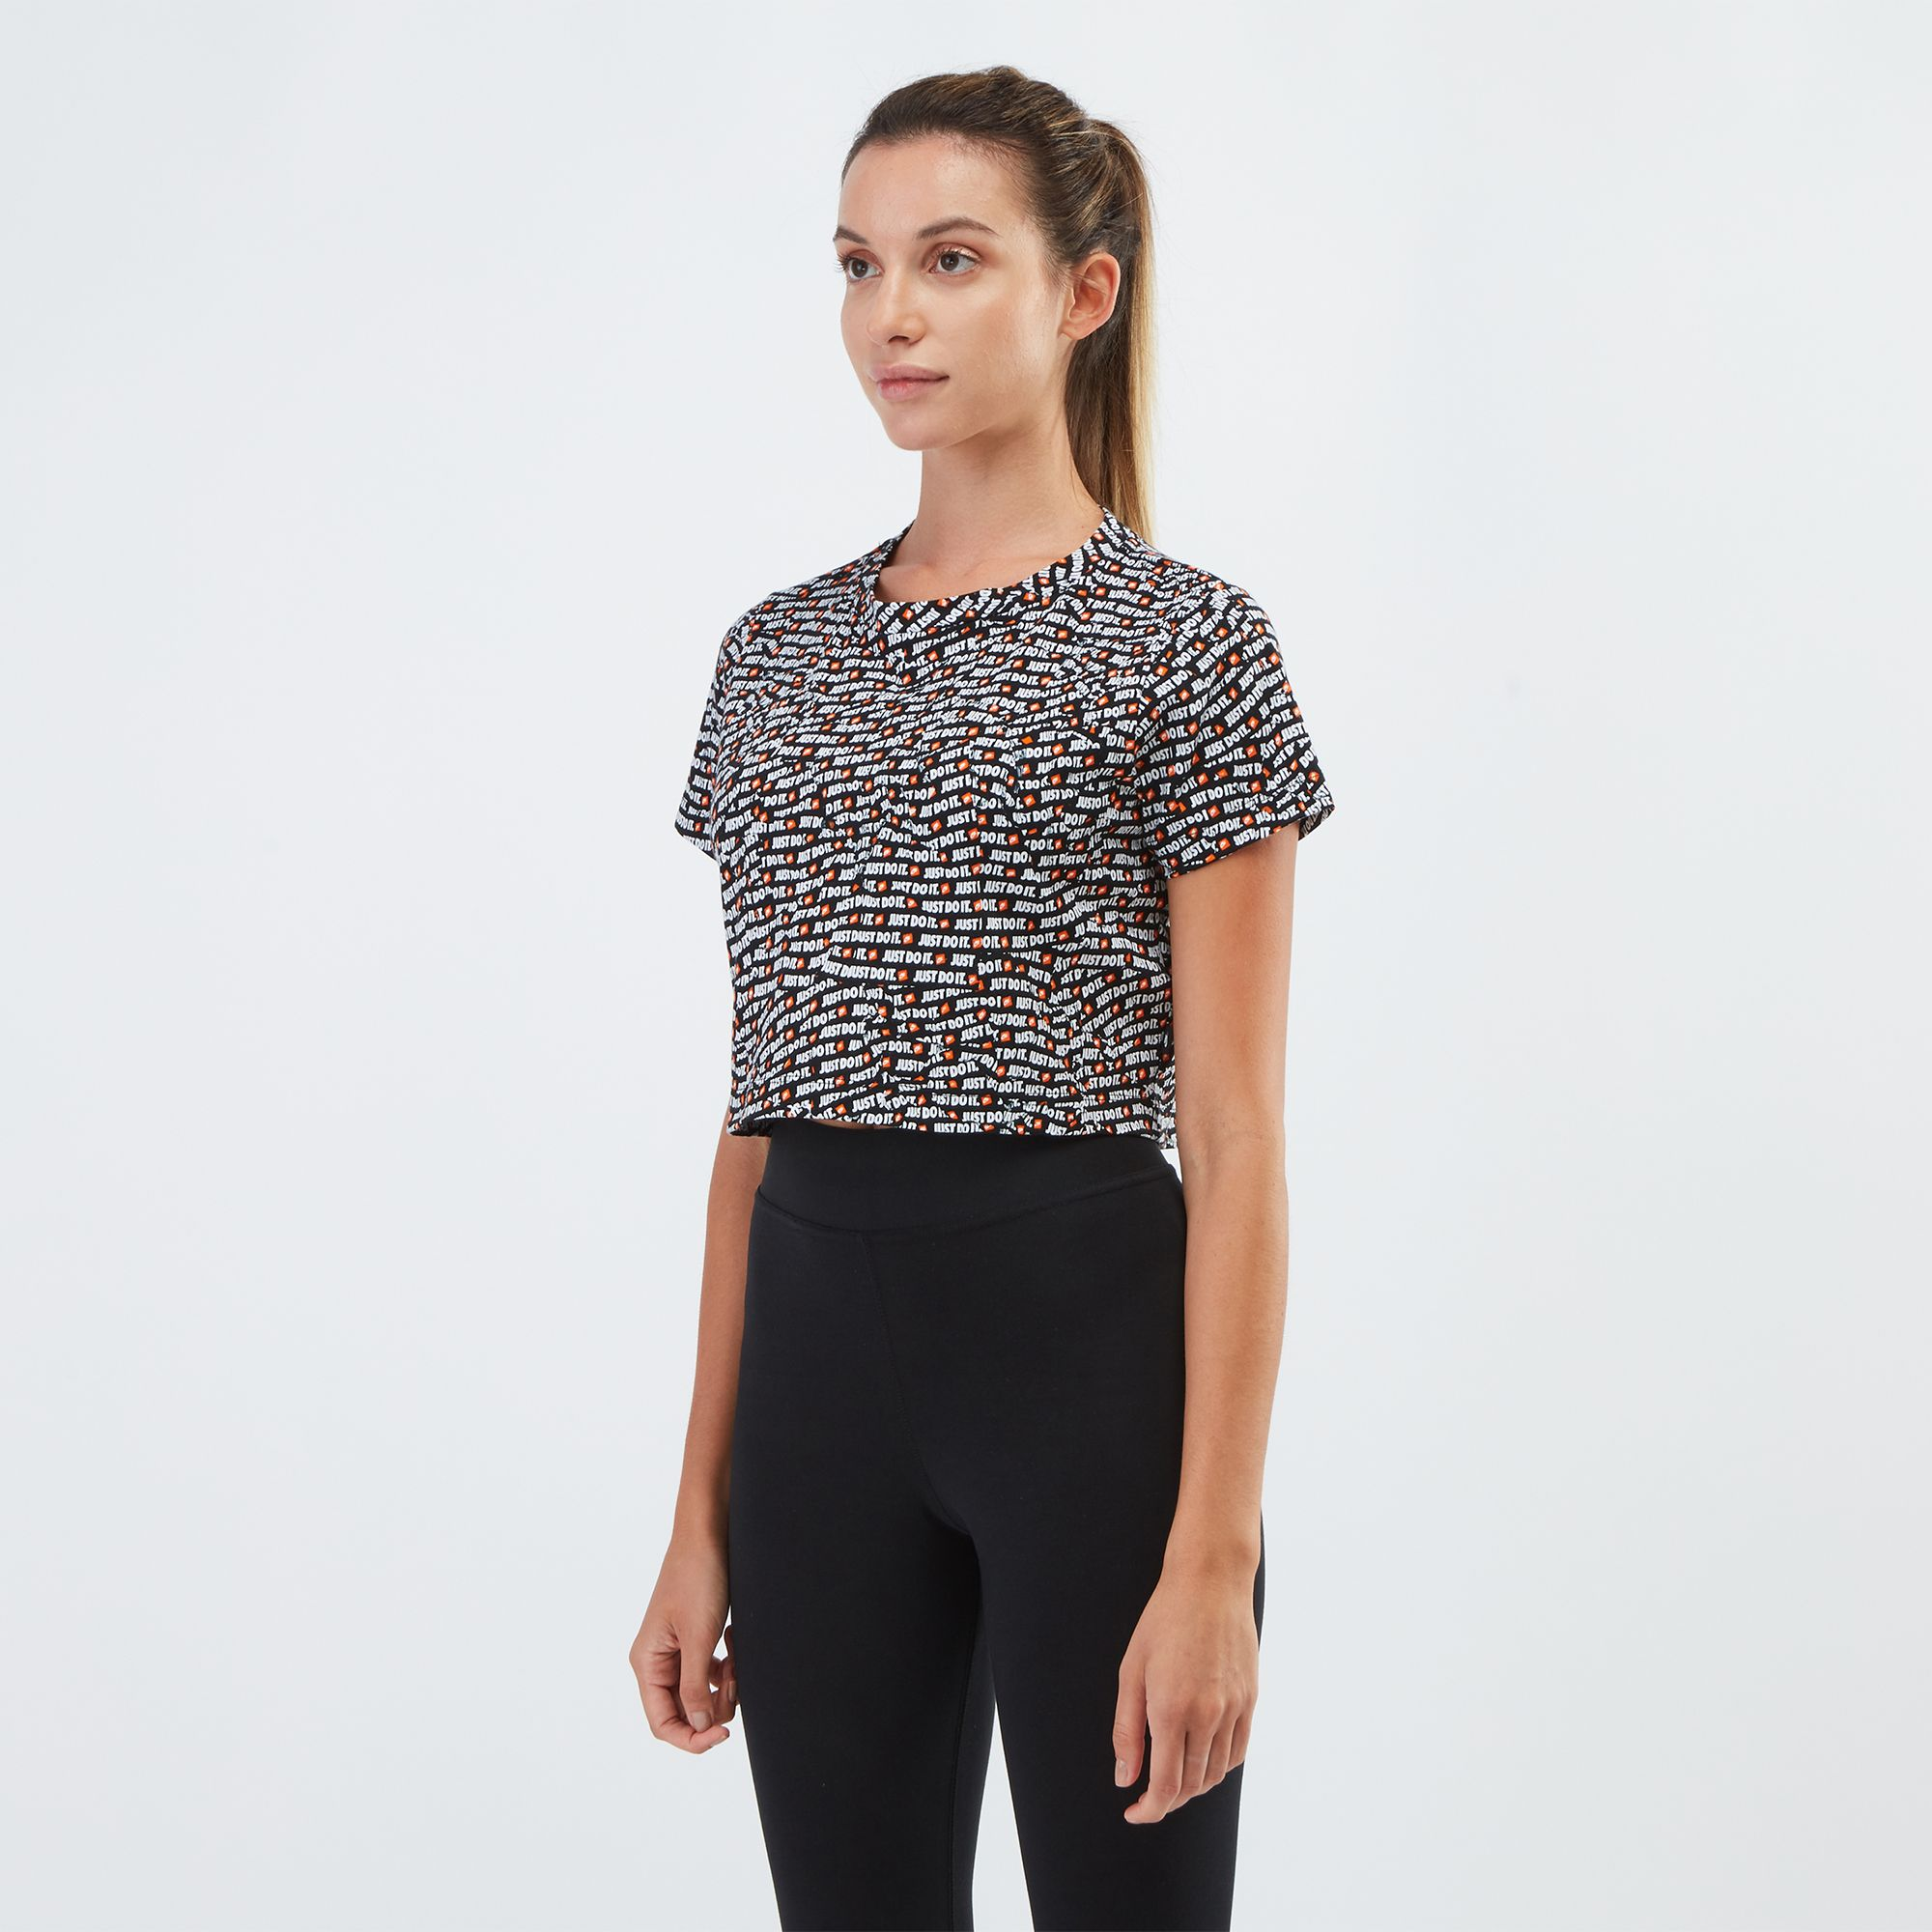 e3cbace469c Nike Sportswear All Over Print Just Do It Crop Top | T-Shirts | Tops ...